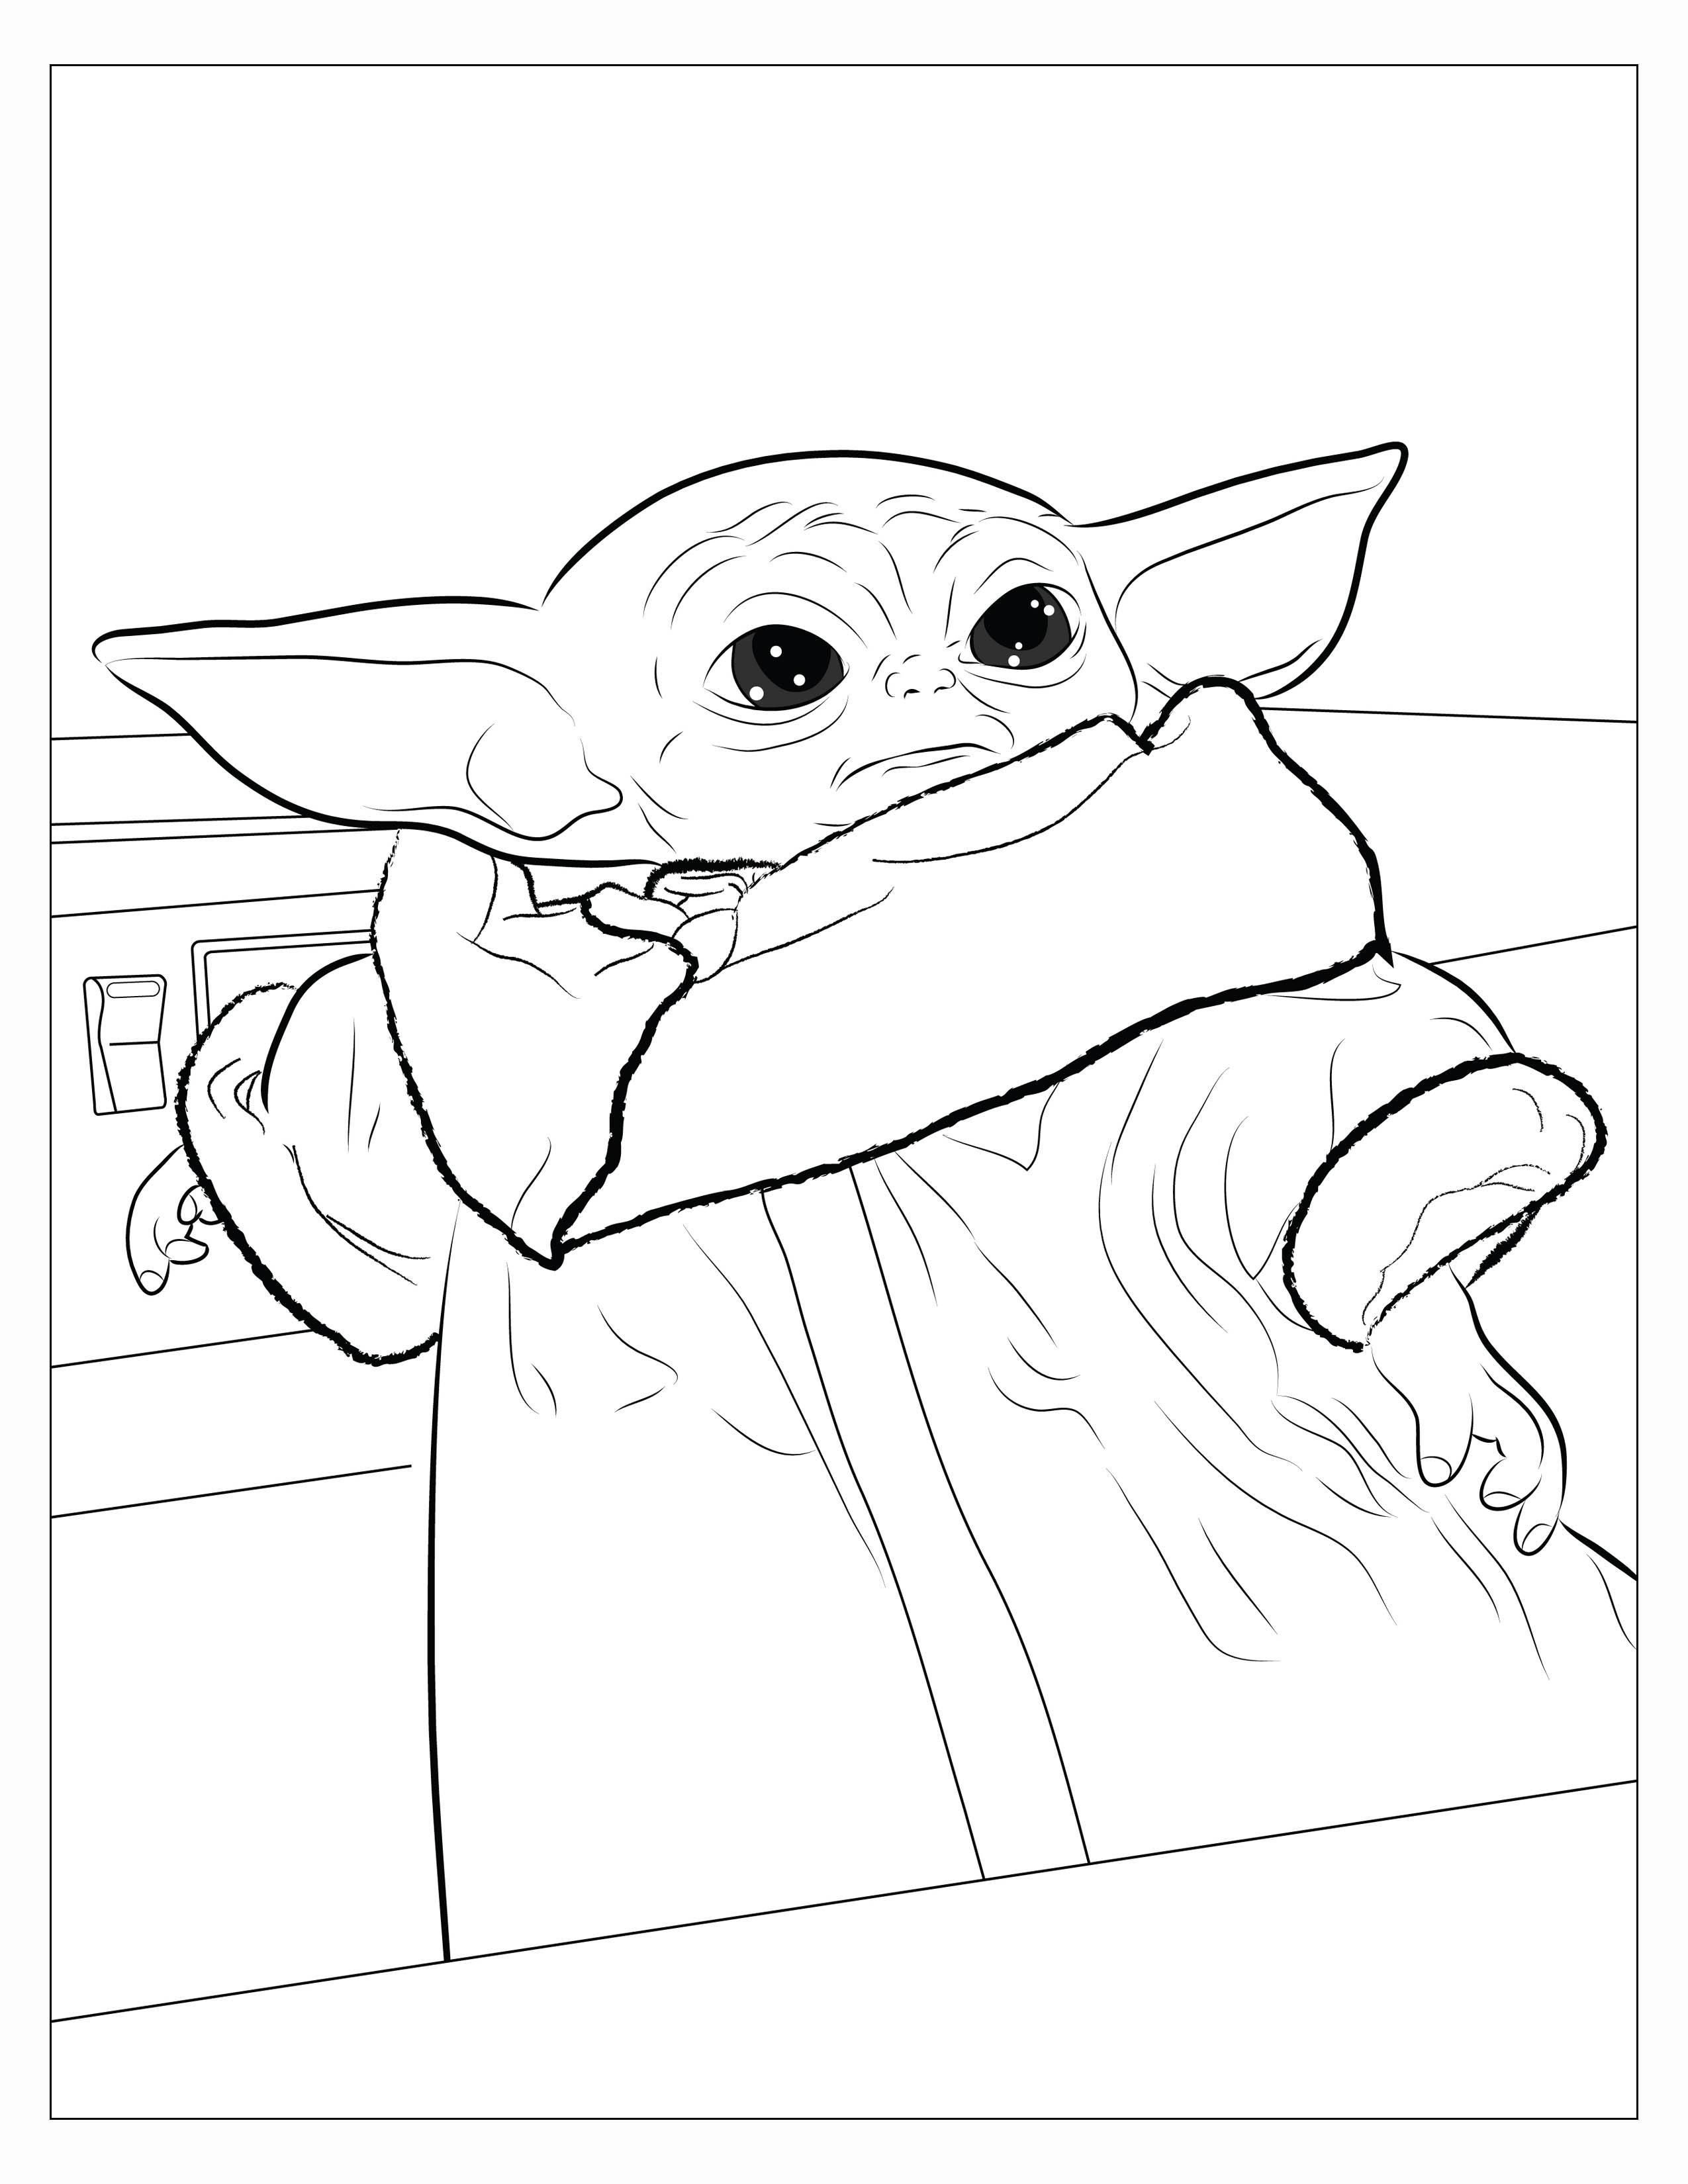 I Made A Coloring Book For My Niece And Here Are 8 Pages You Can Download And Print R Babyyoda Baby Yoda Grogu In 2021 Coloring Book Pages Cute Coloring Pages Coloring Pages